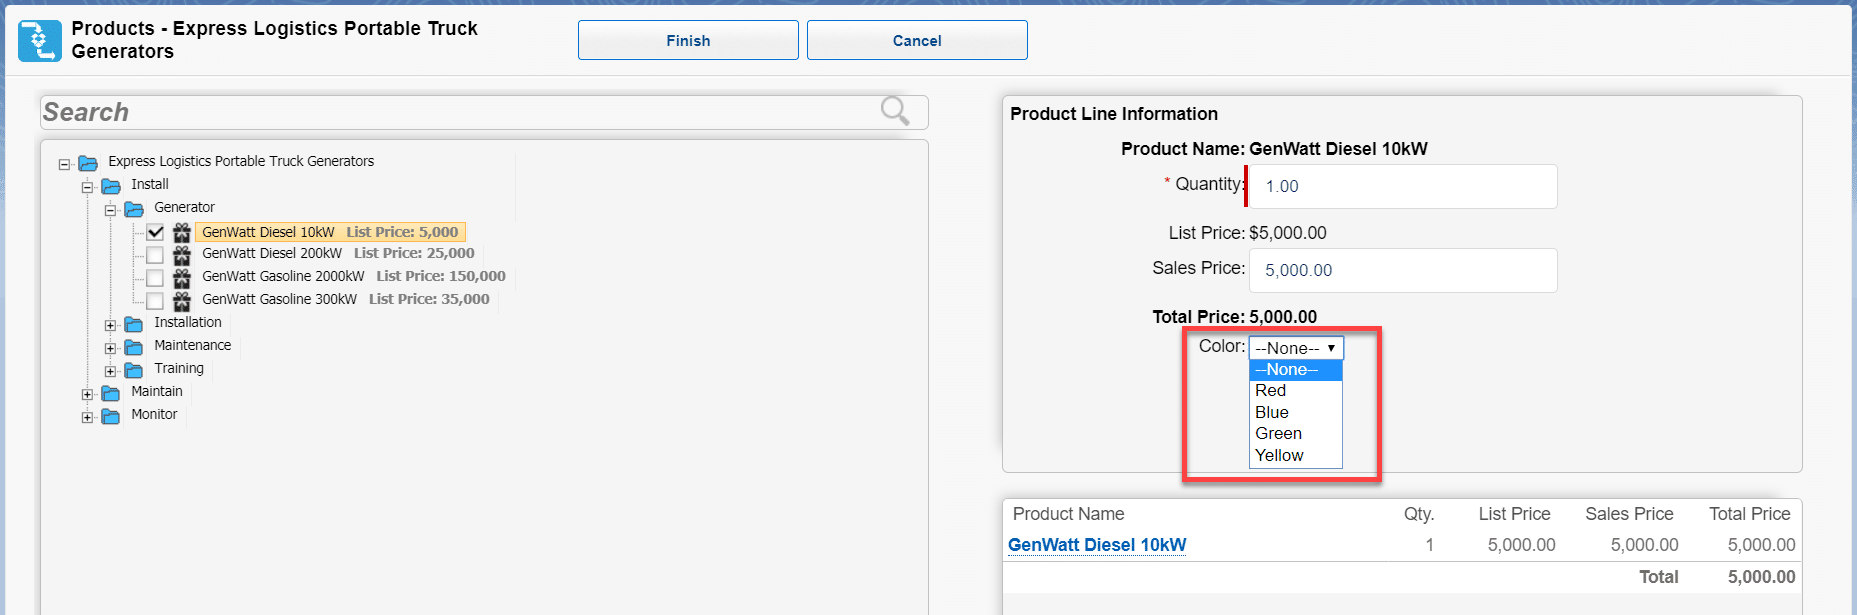 Other fields can also be added for salespeople to enter in the product wizard